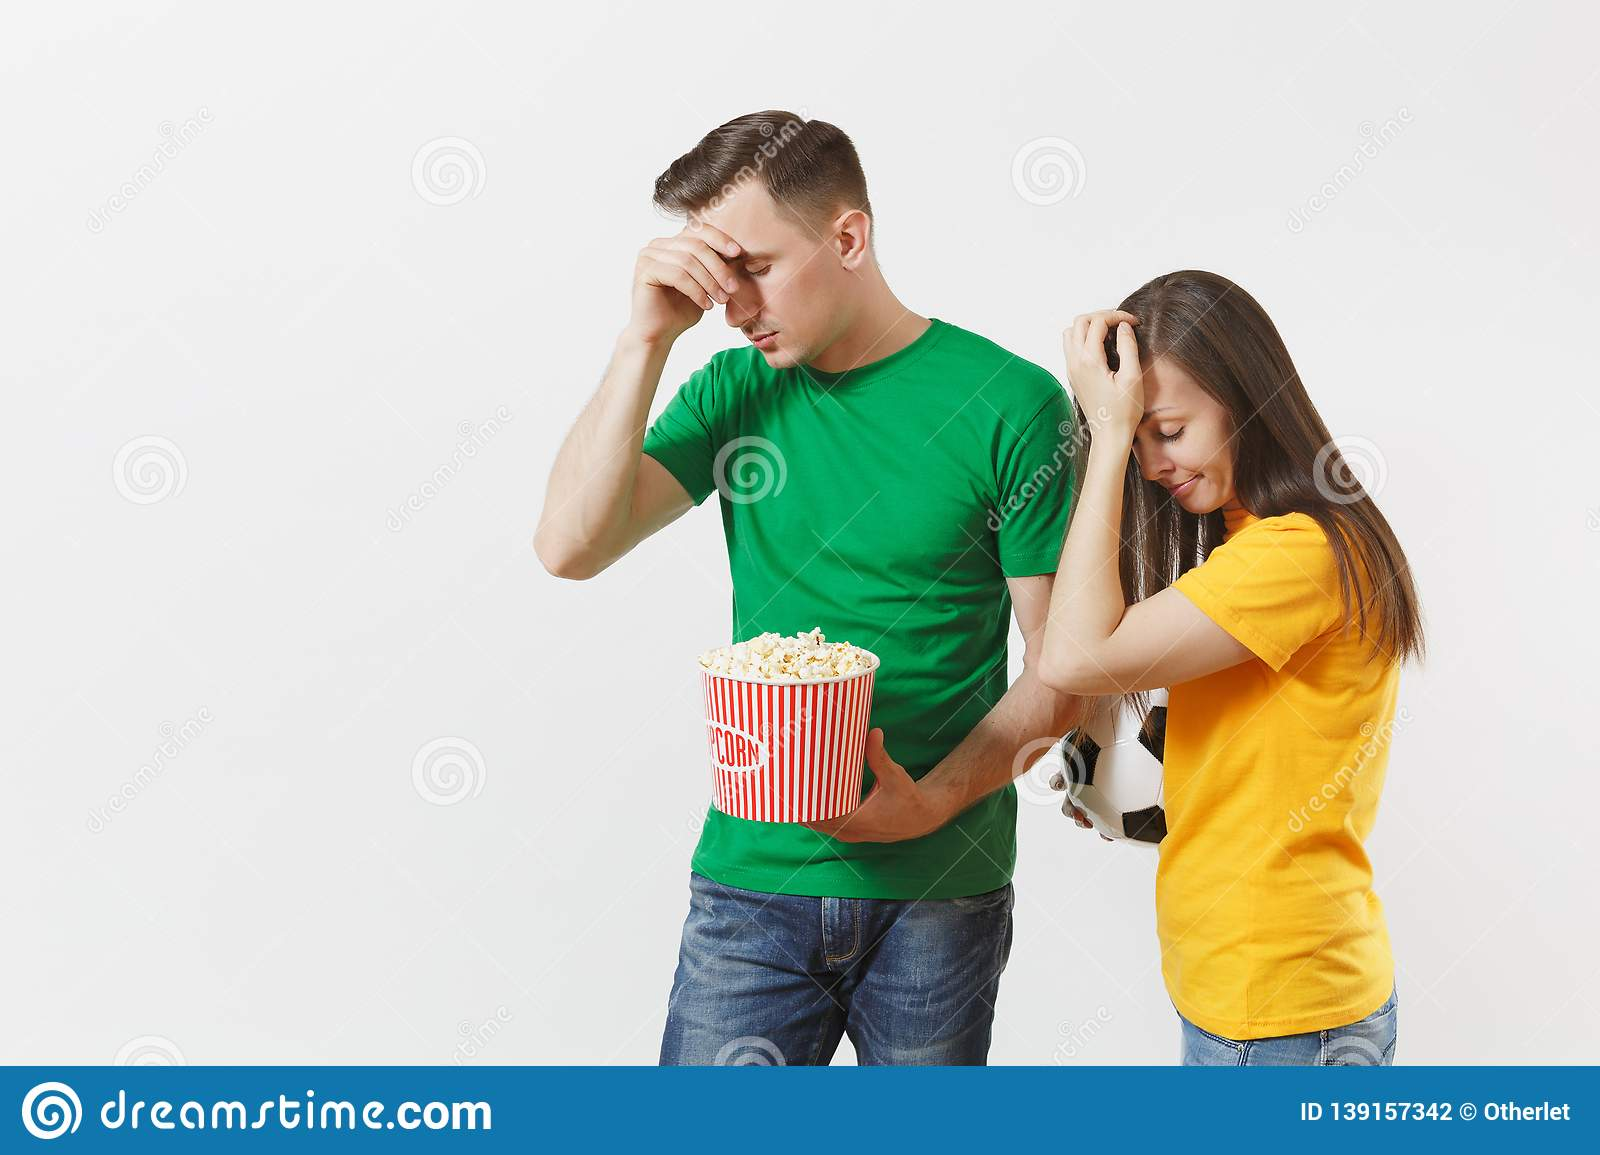 European upset couple, woman, man, football fans in yellow green t-shirt cheer up support team with soccer ball bucket